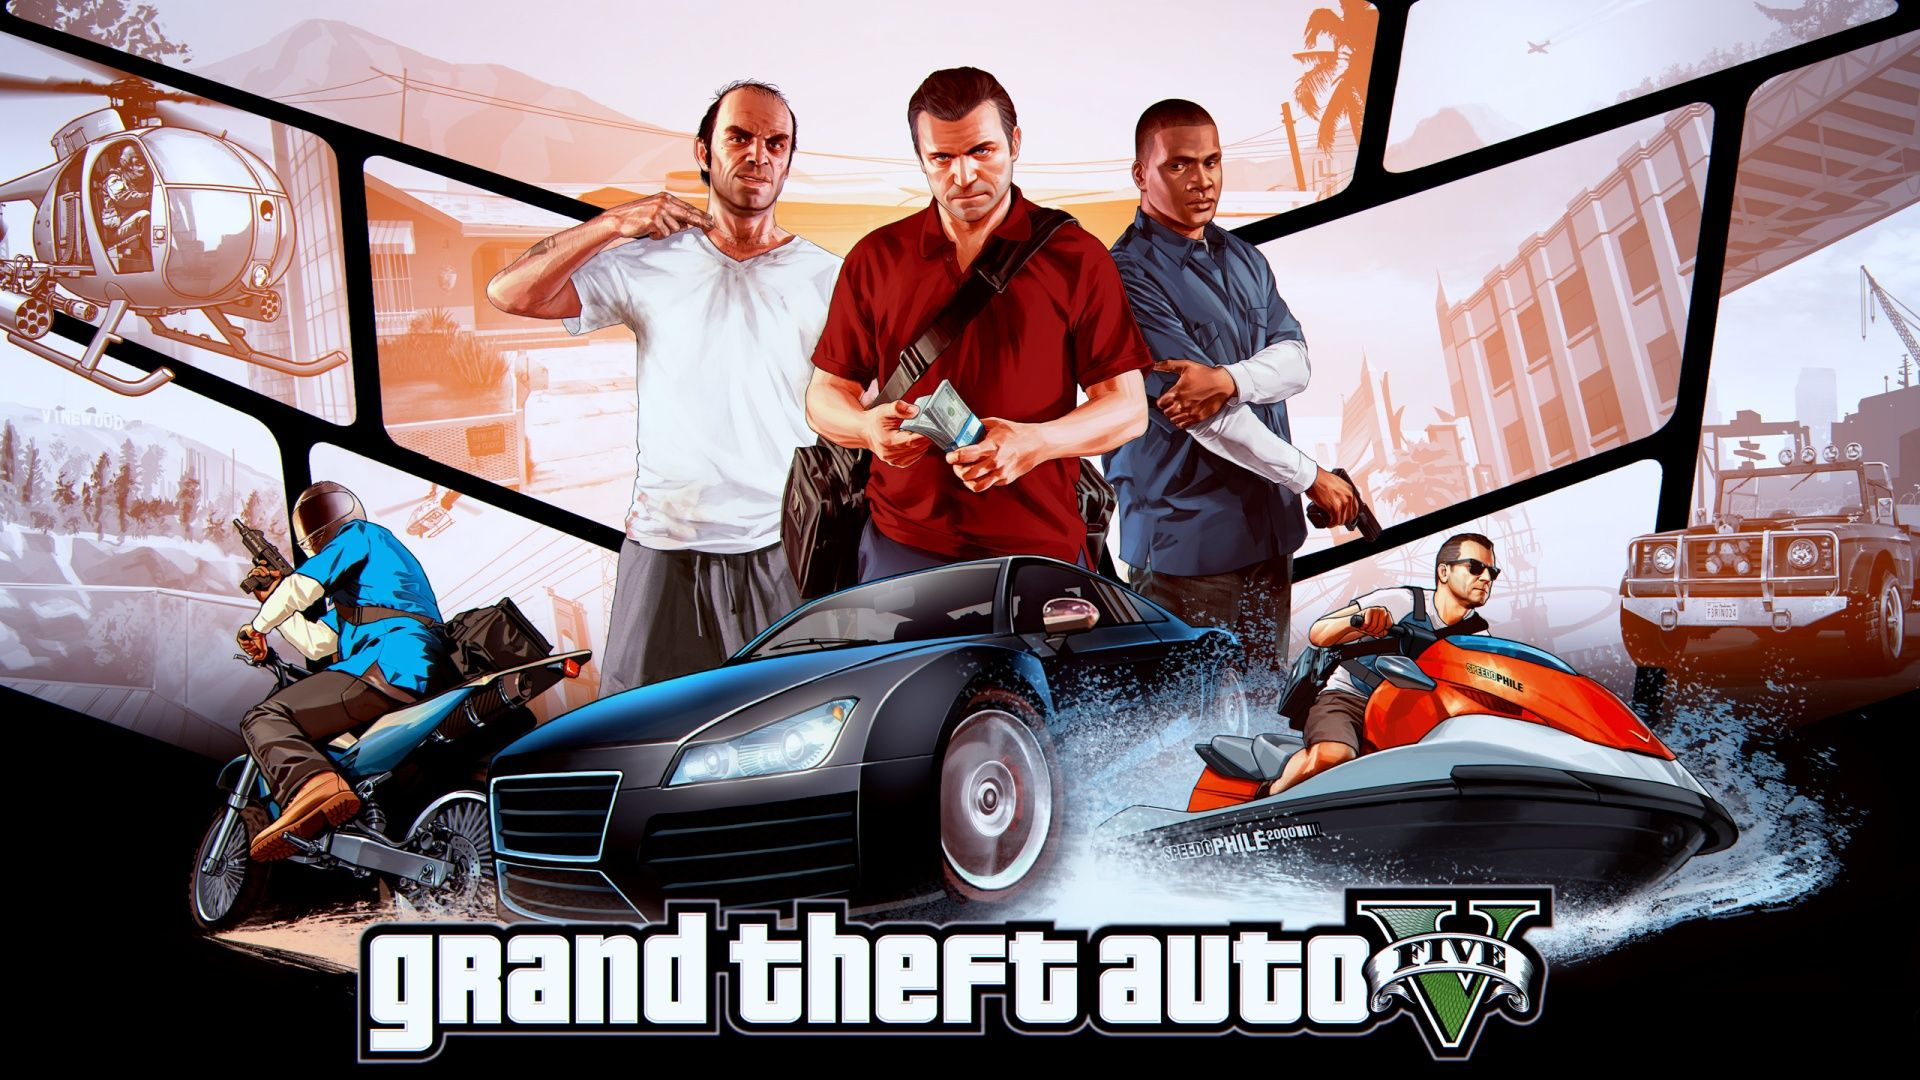 Gta Fan Art Wallpaper V Games Video Games Bollywood Wallpaper Ps